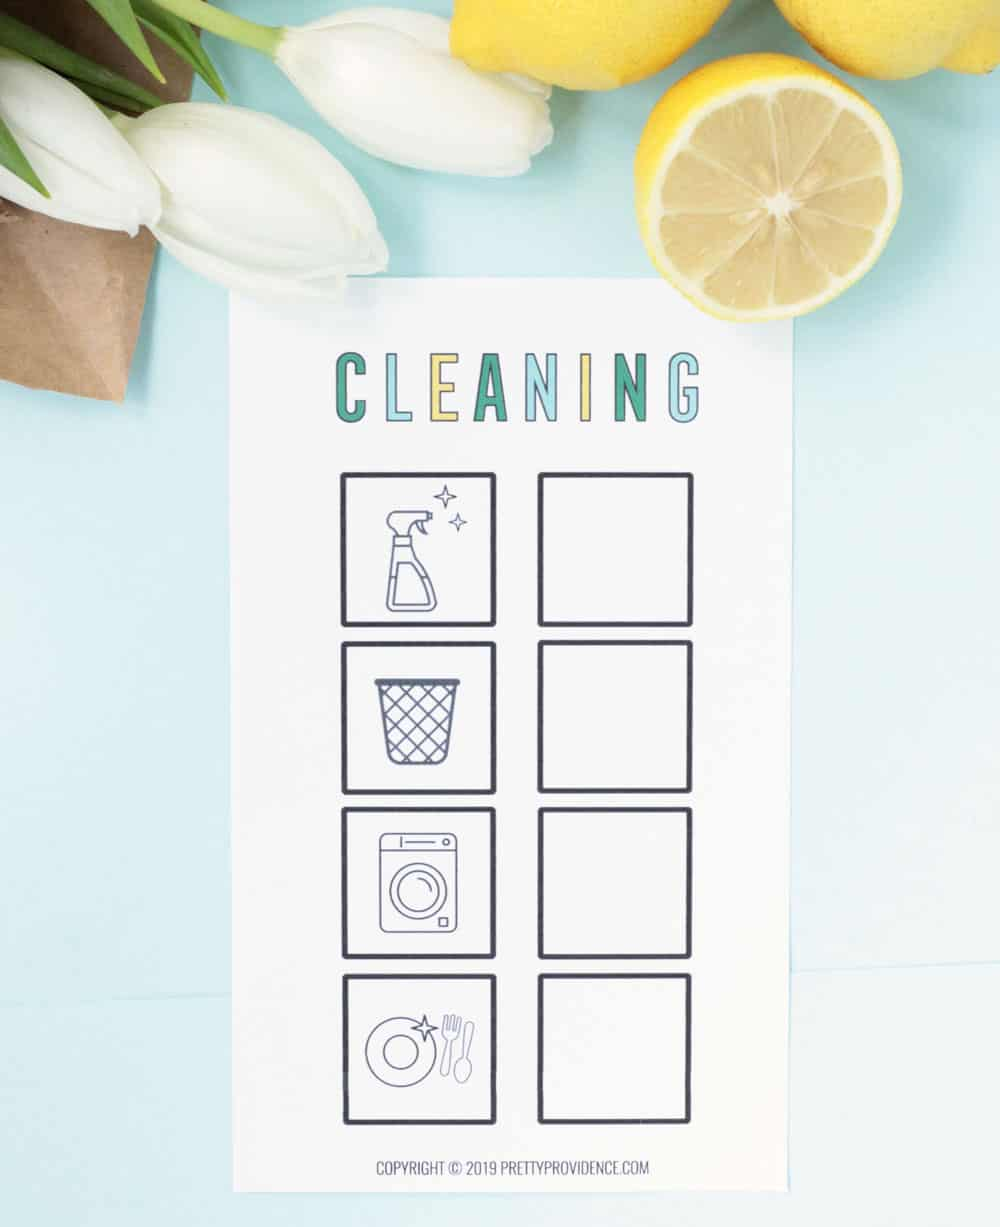 Cleaning checklist for kids with pictures on it and squares to check off tasks as they go.